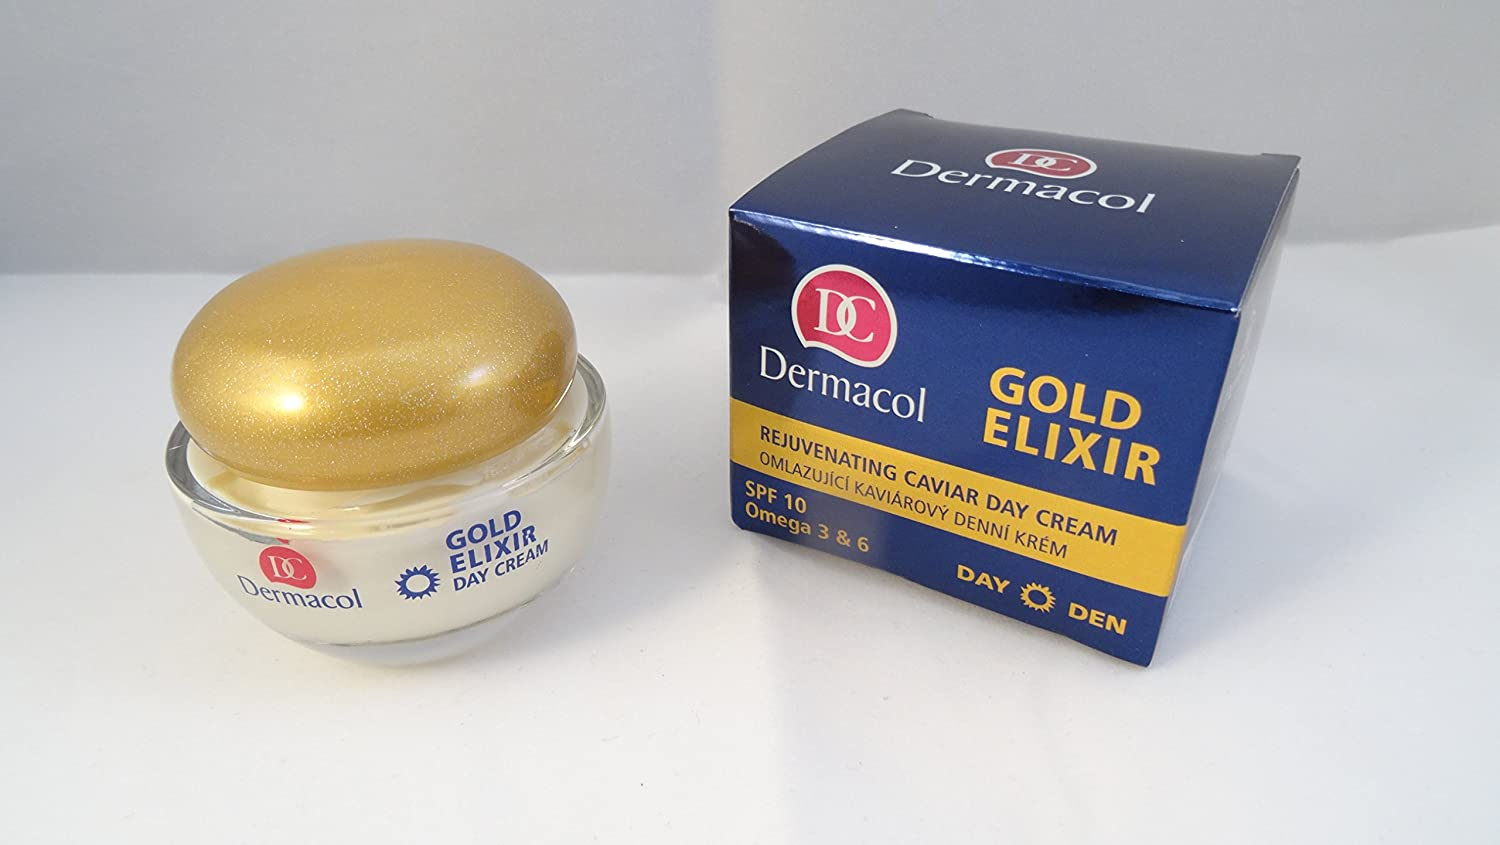 Amazon.com: Crema de Día con Caviar - FPS10 - Gold Elixir - Dermacol: Beauty